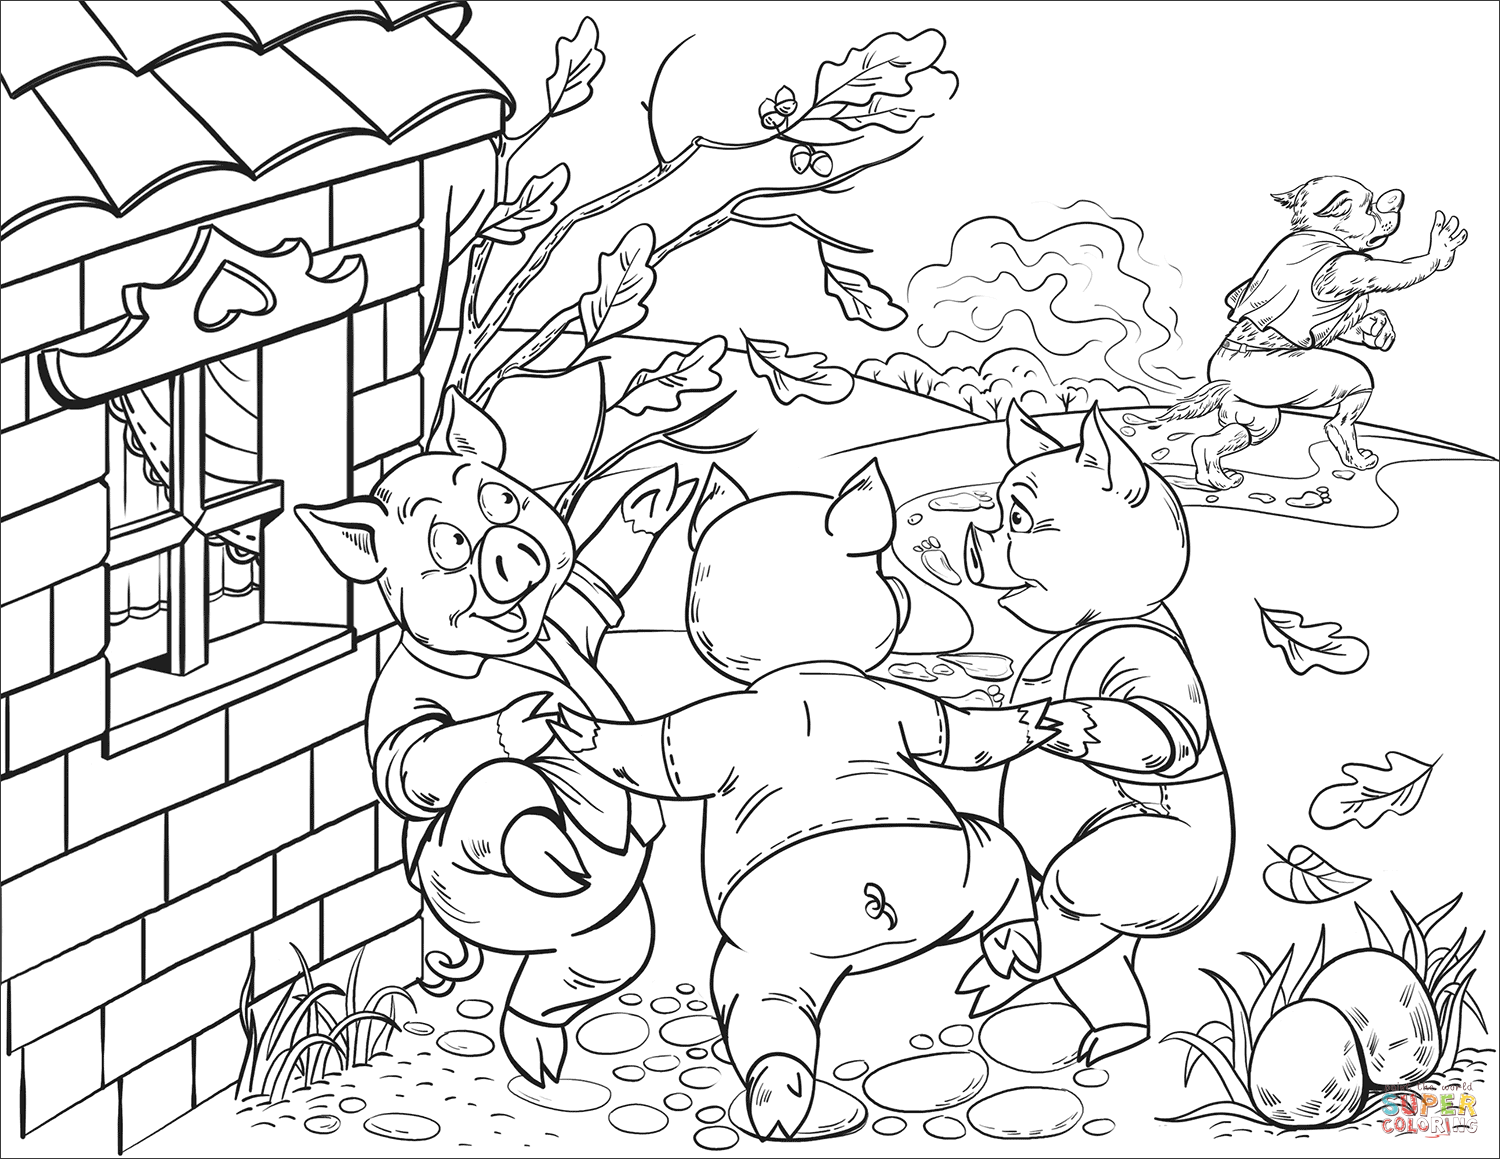 3 little pigs coloring page three little pigs coloring pages coloring pages to page 3 little pigs coloring